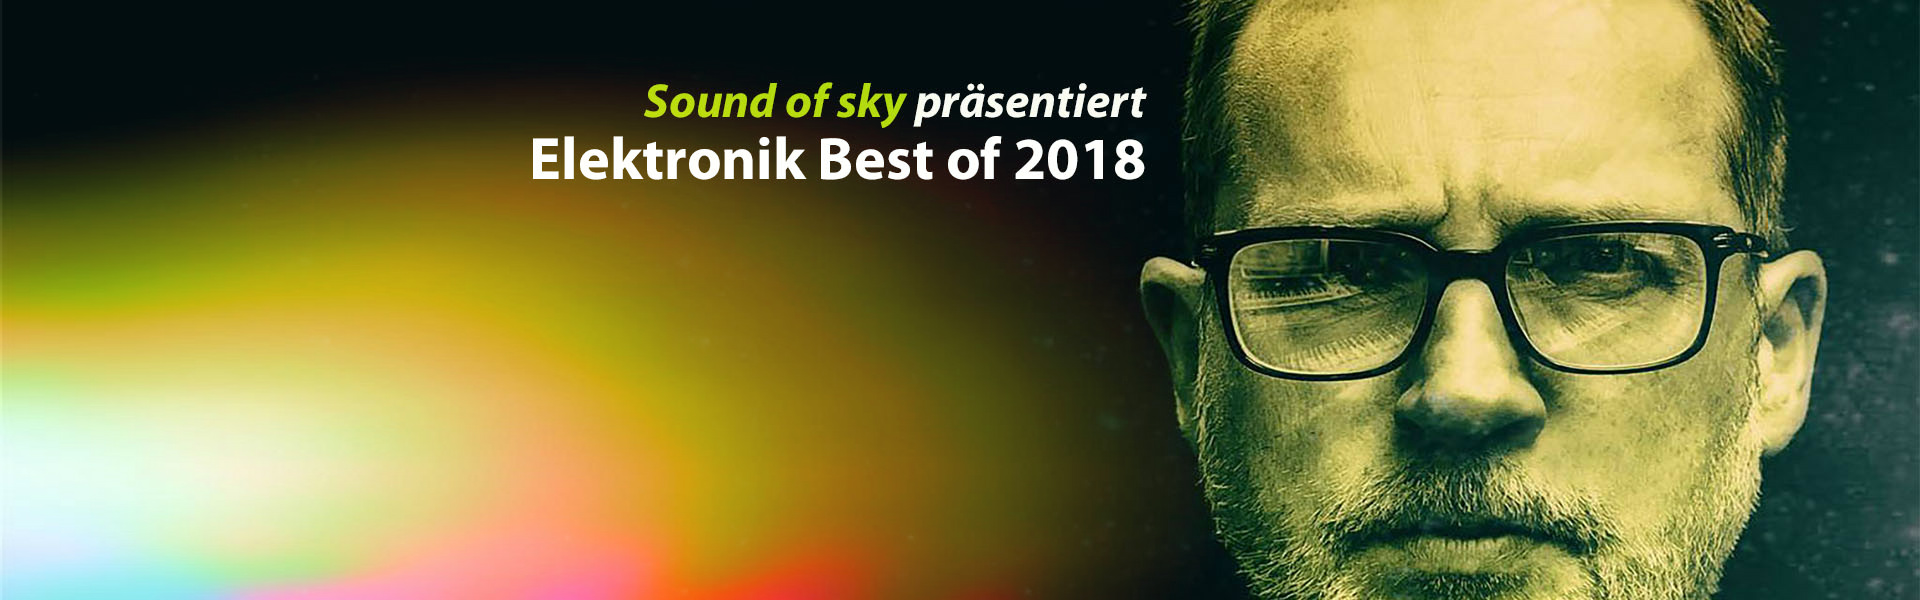 Sound of Sky - Elektronik Highlights 2018